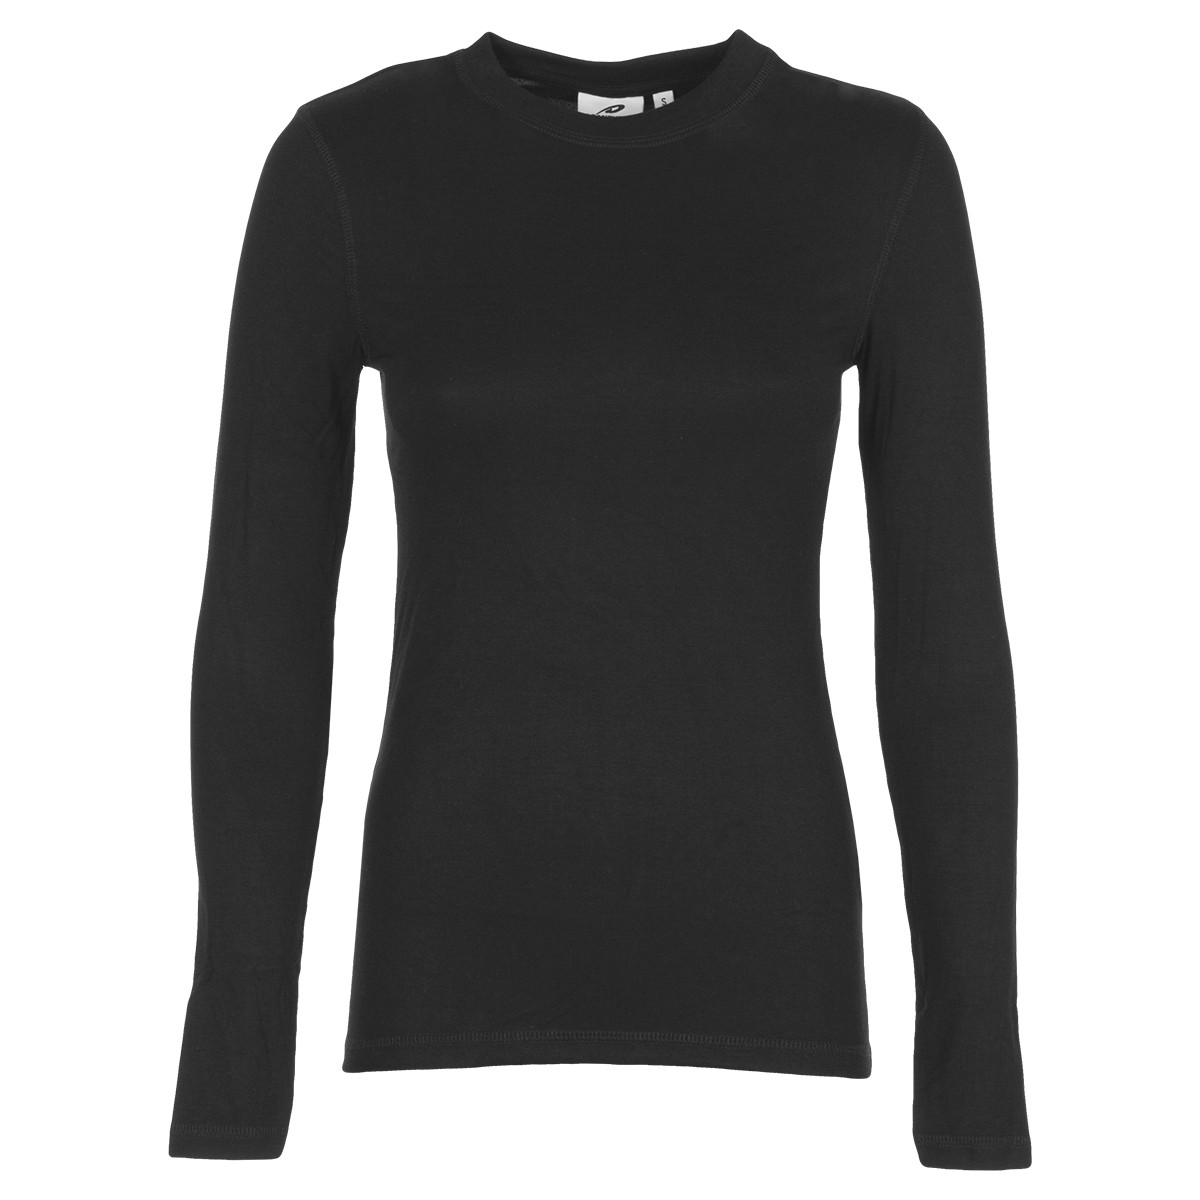 T-shirt thermo femmes Panther - Noir